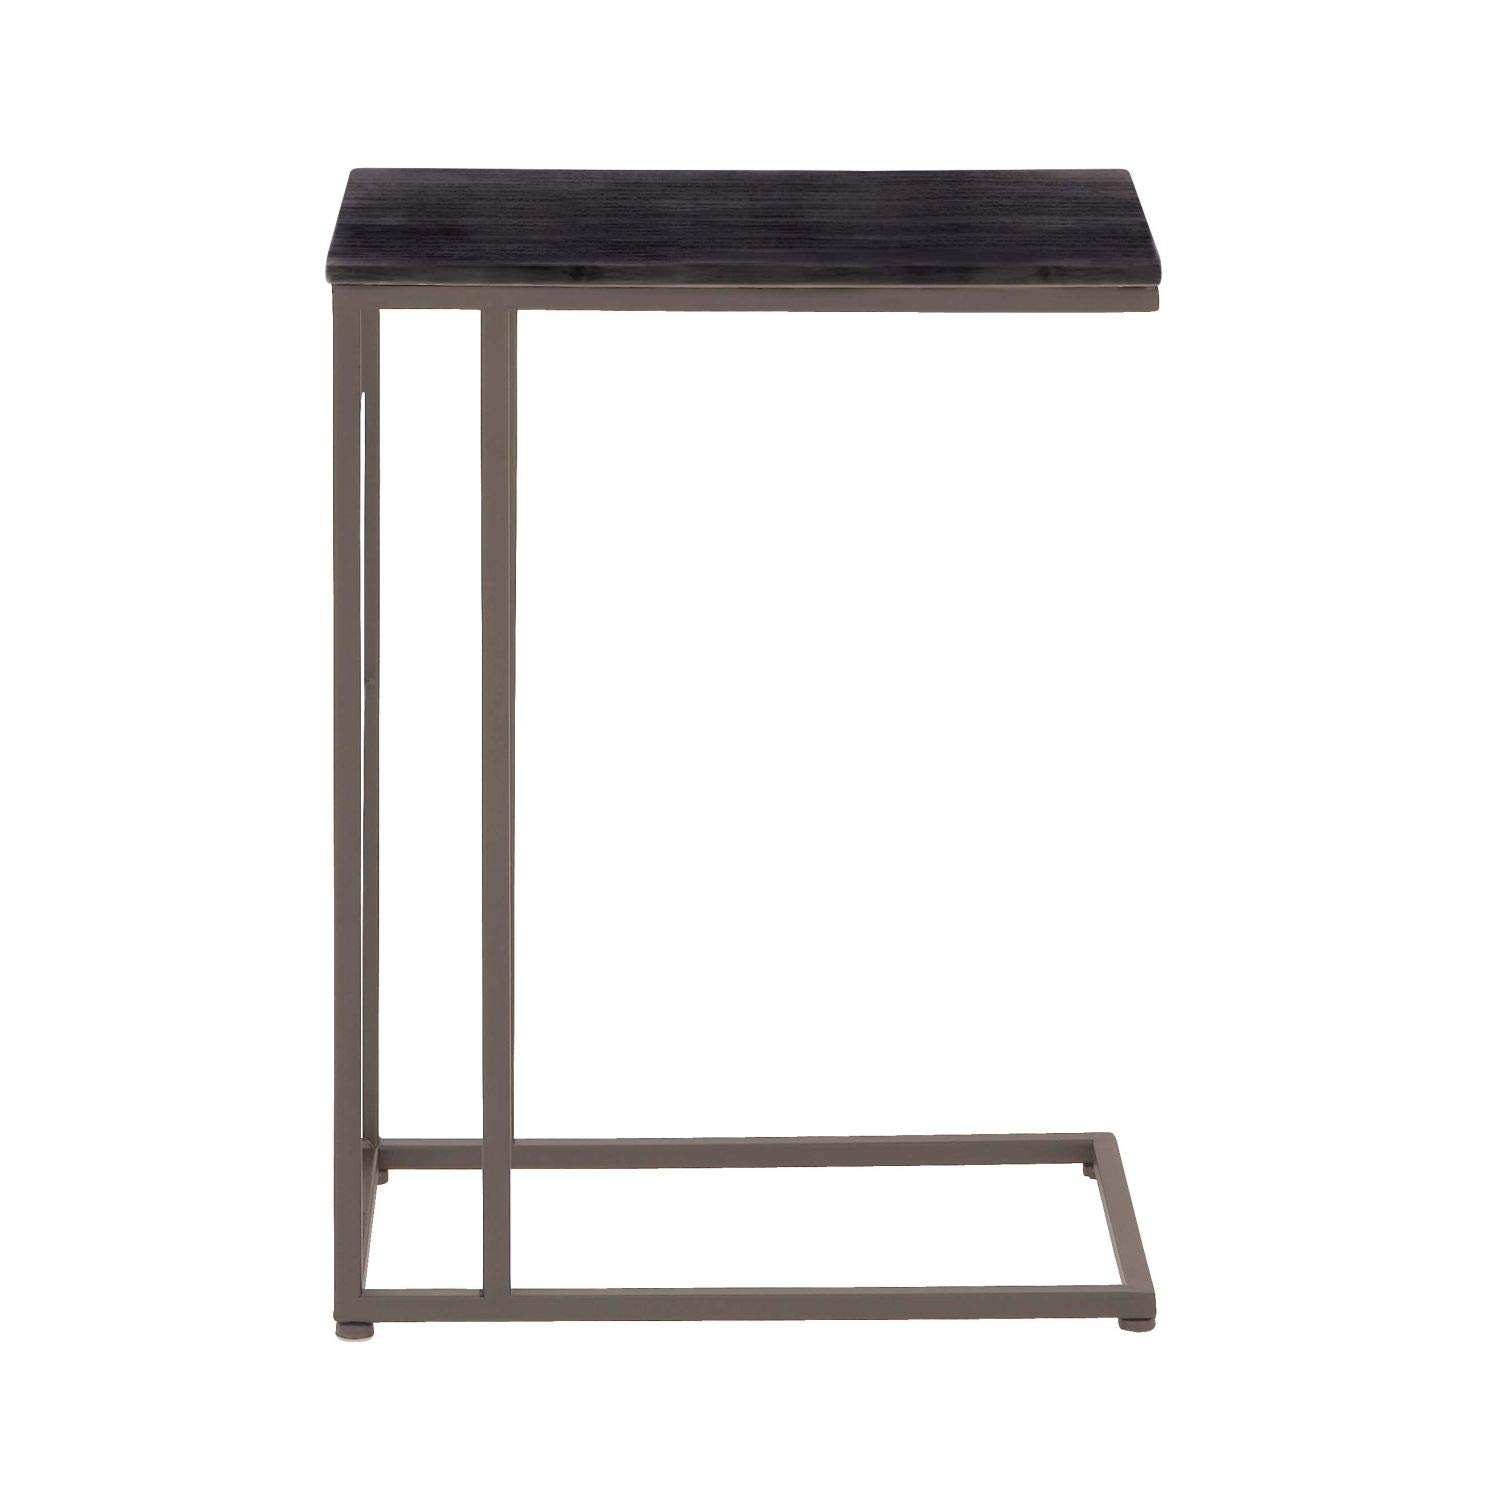 Deco 79 58634 Brushed Iron and Wood Rectangular Accent Table, 26 x 19, Black/Gray 26 x 19